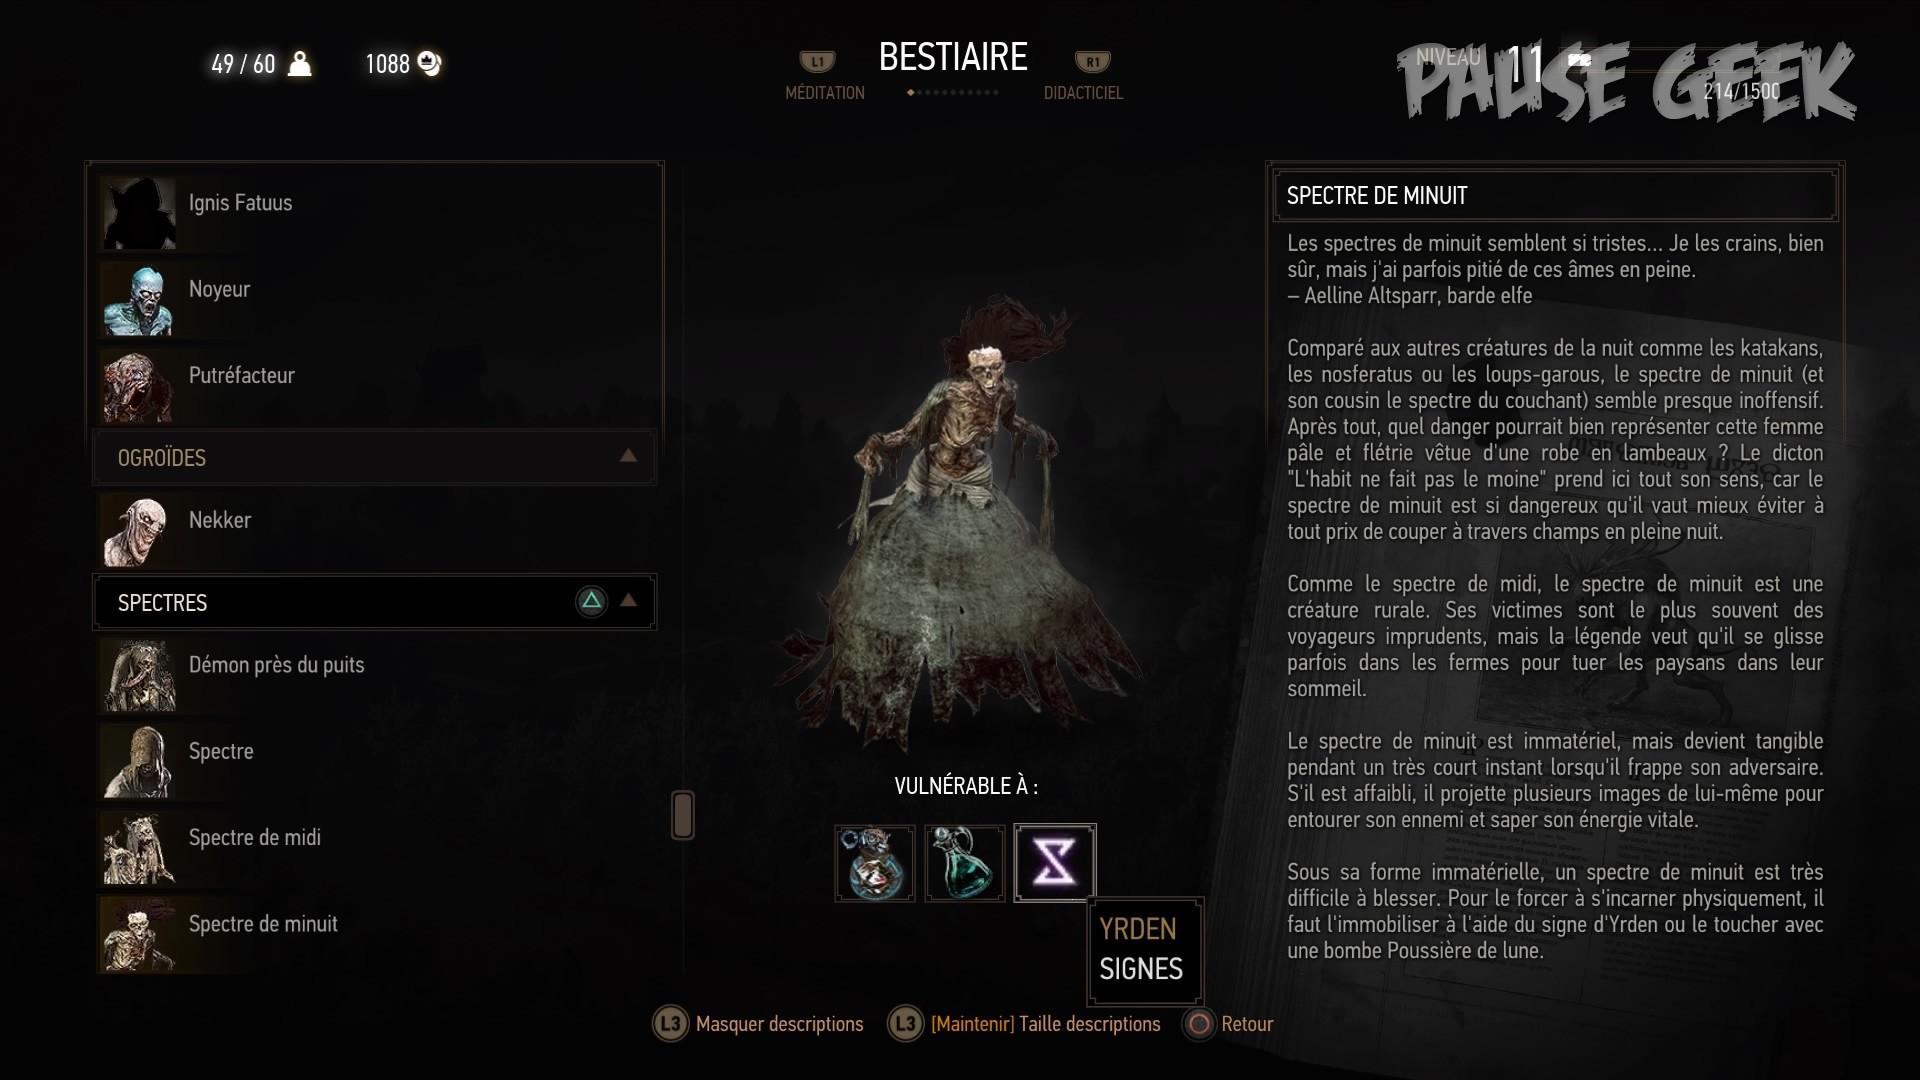 Image du bestiaire du jeu vidéo The Witcher 3 Wild Hunt de CD Projekt Red sur PS4